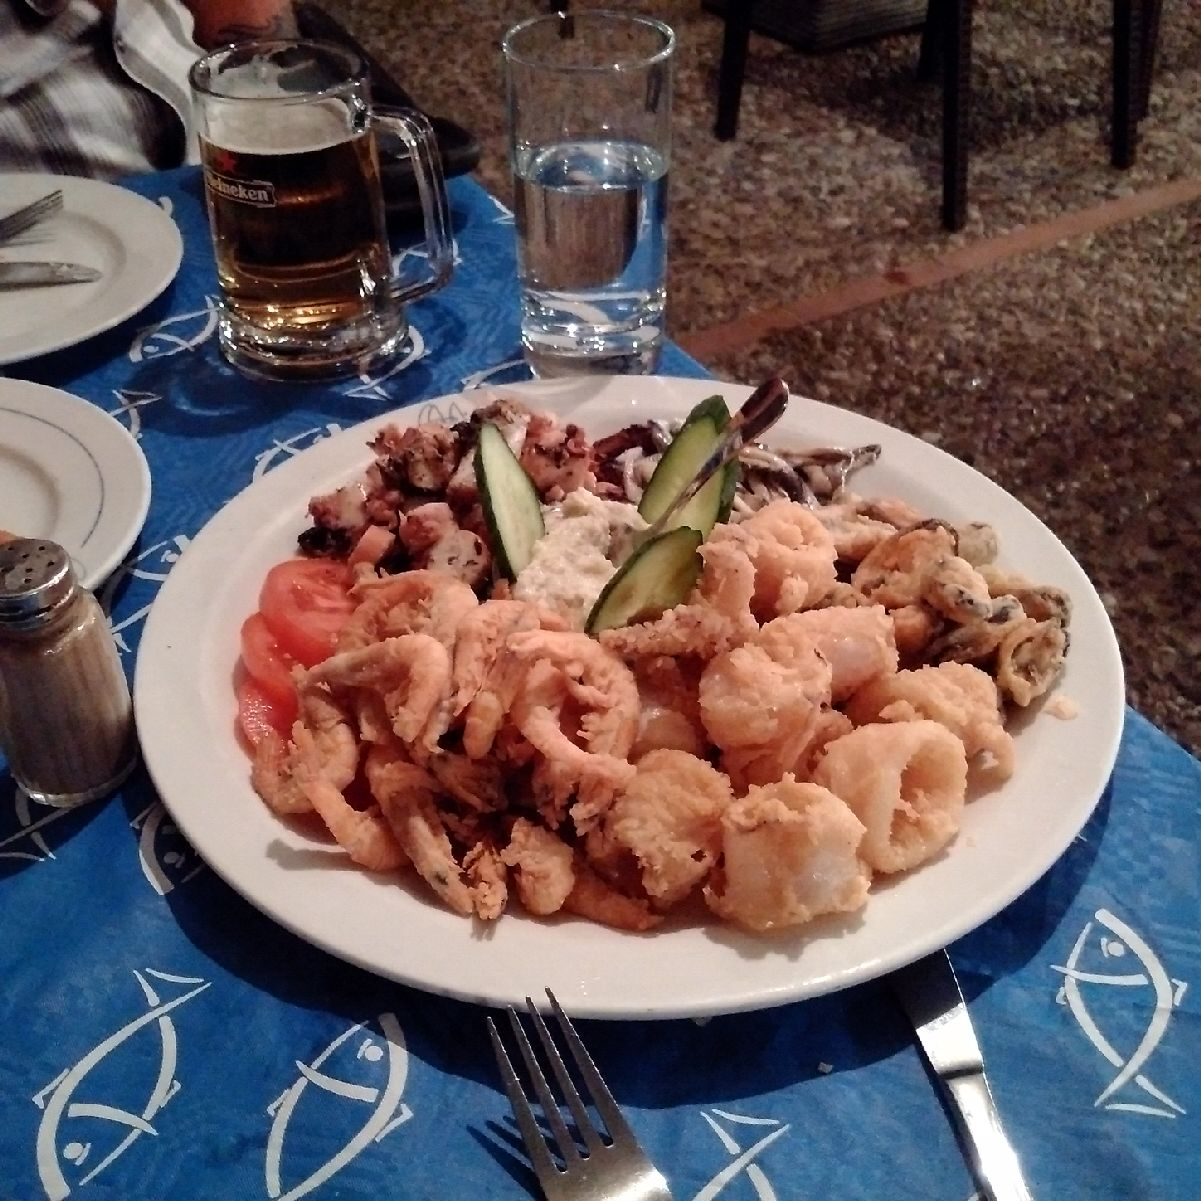 Yummy seafood platter enjoyed in Glyfada